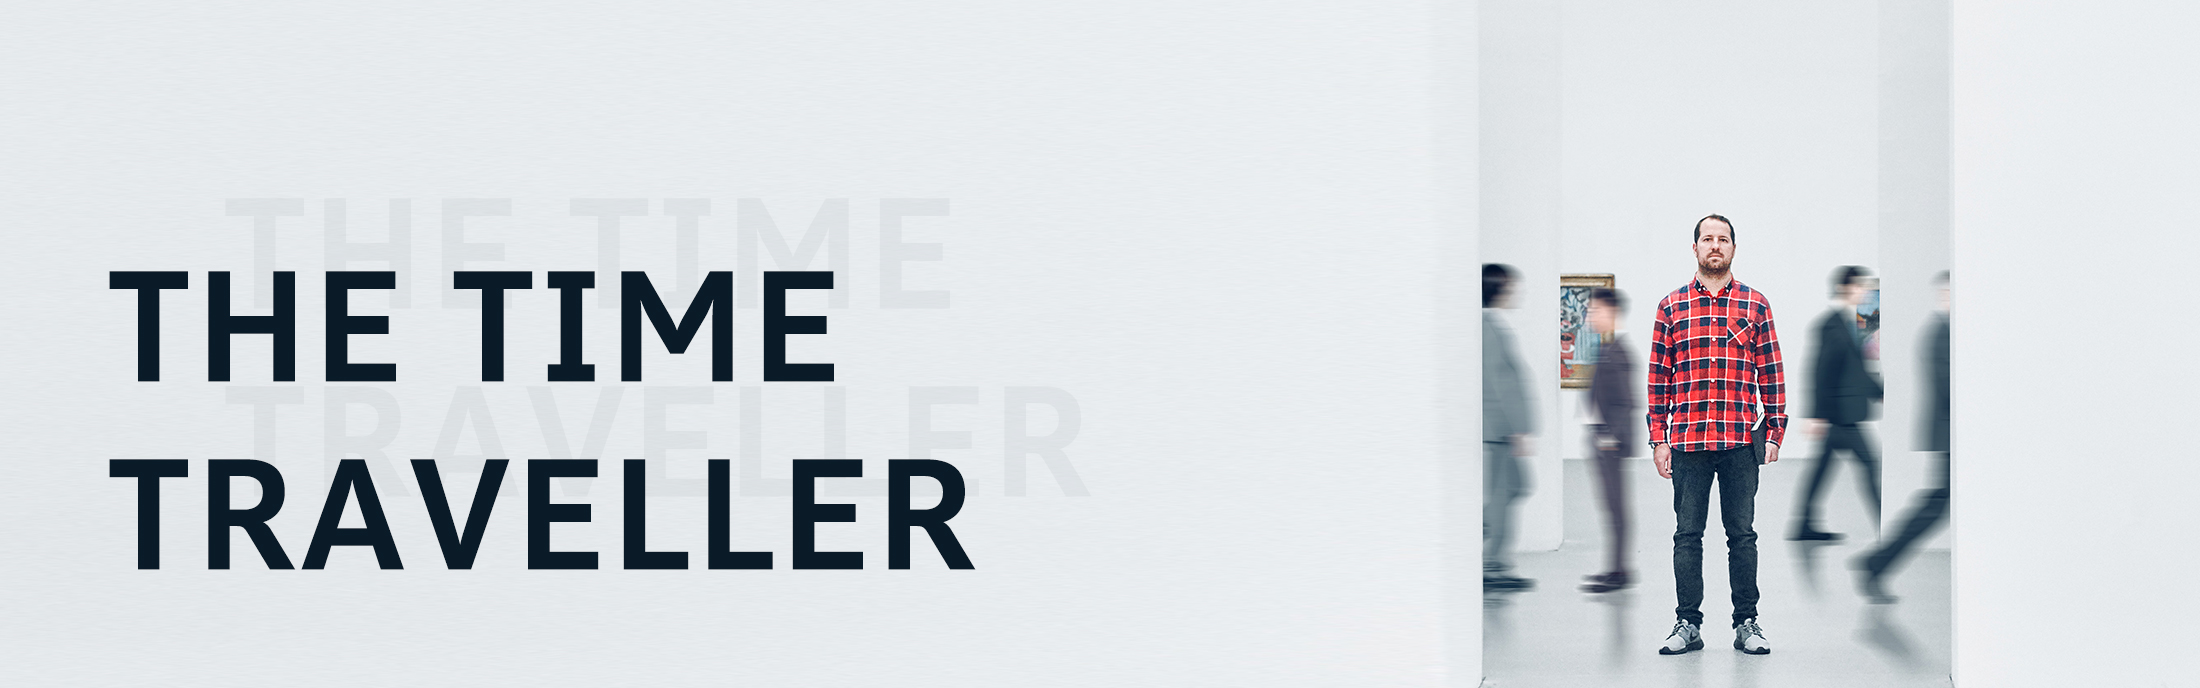 the-time-traveller-banner.jpg